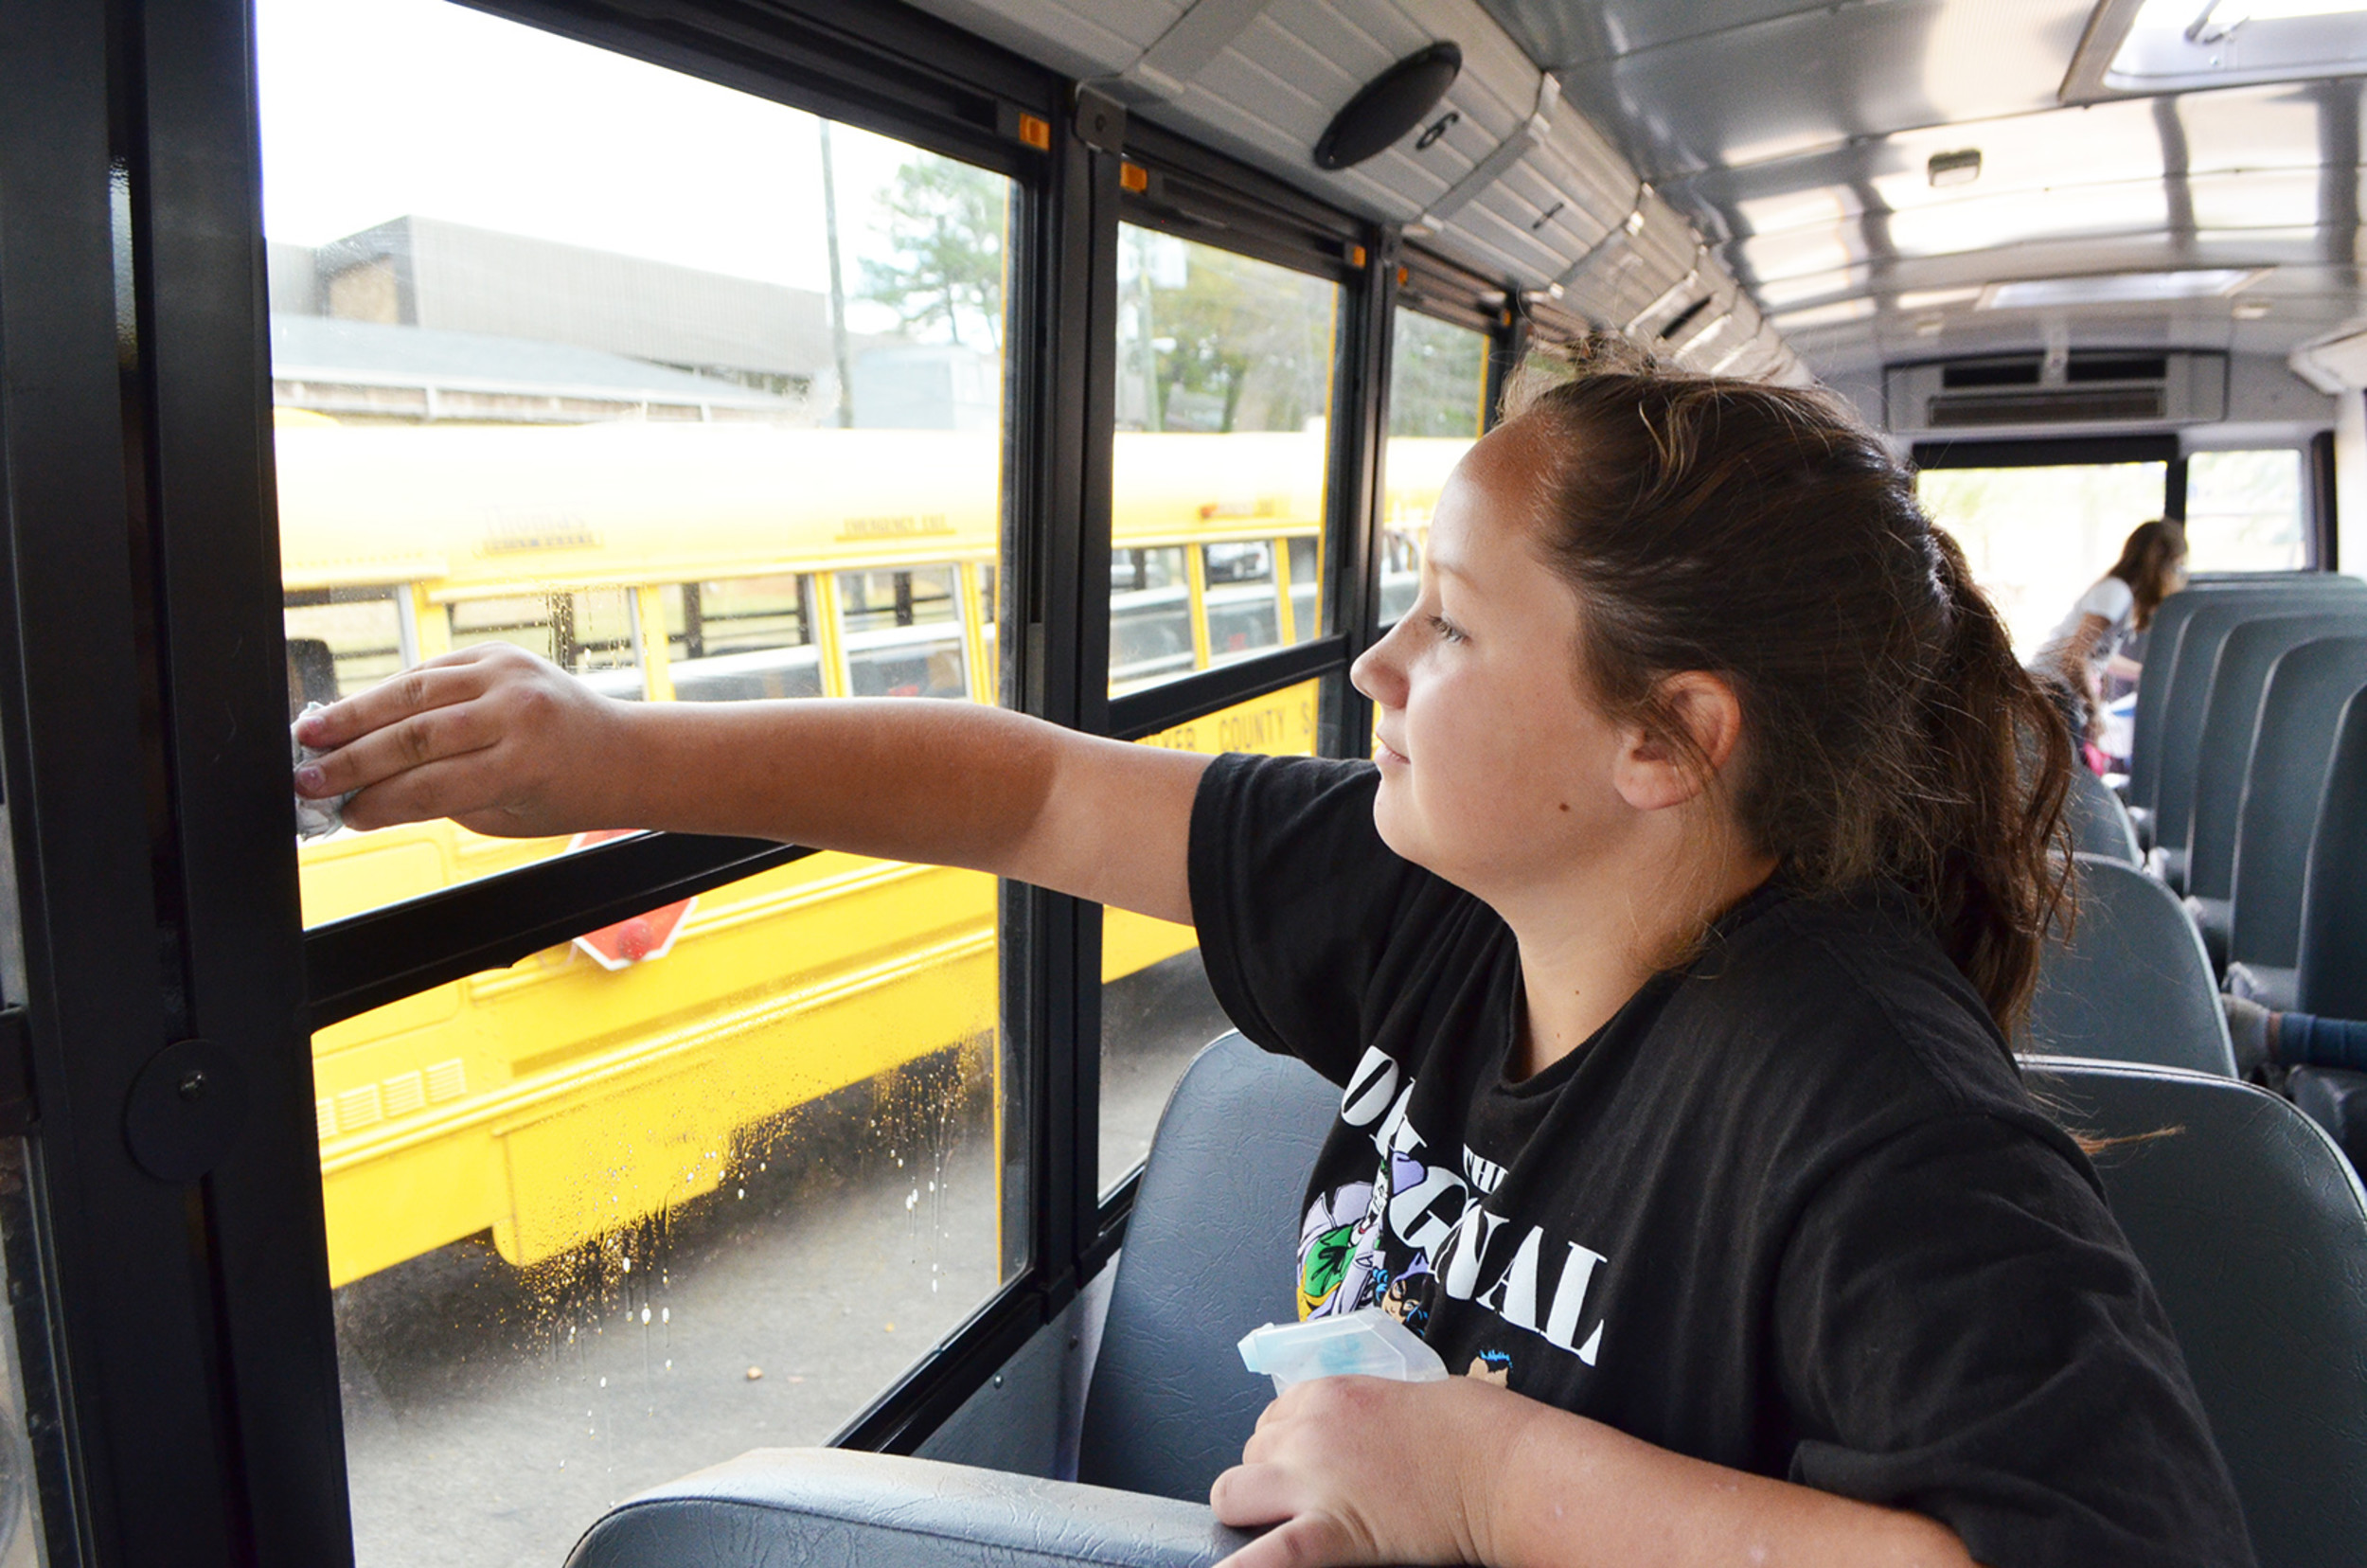 Seventh grade students at Sumiton Middle School cleaned the inside of school buses on Friday and treated bus drivers to coffee, hot chocolate and snacks.   Daily Mountain Eagle - Nicole Smith